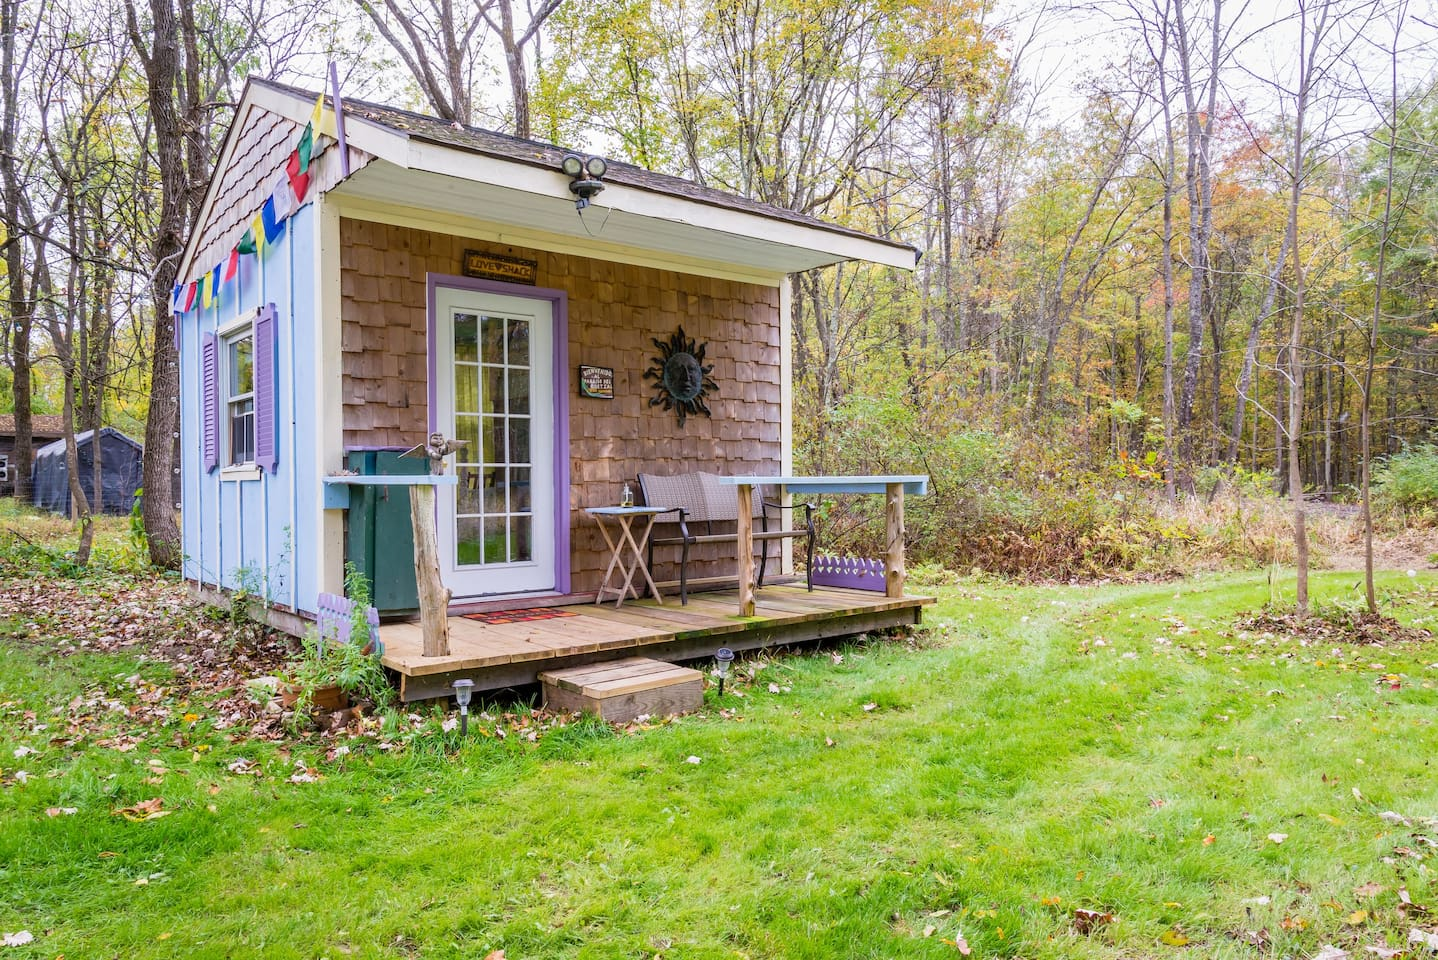 A Tiny Home In Rosendale, New York.